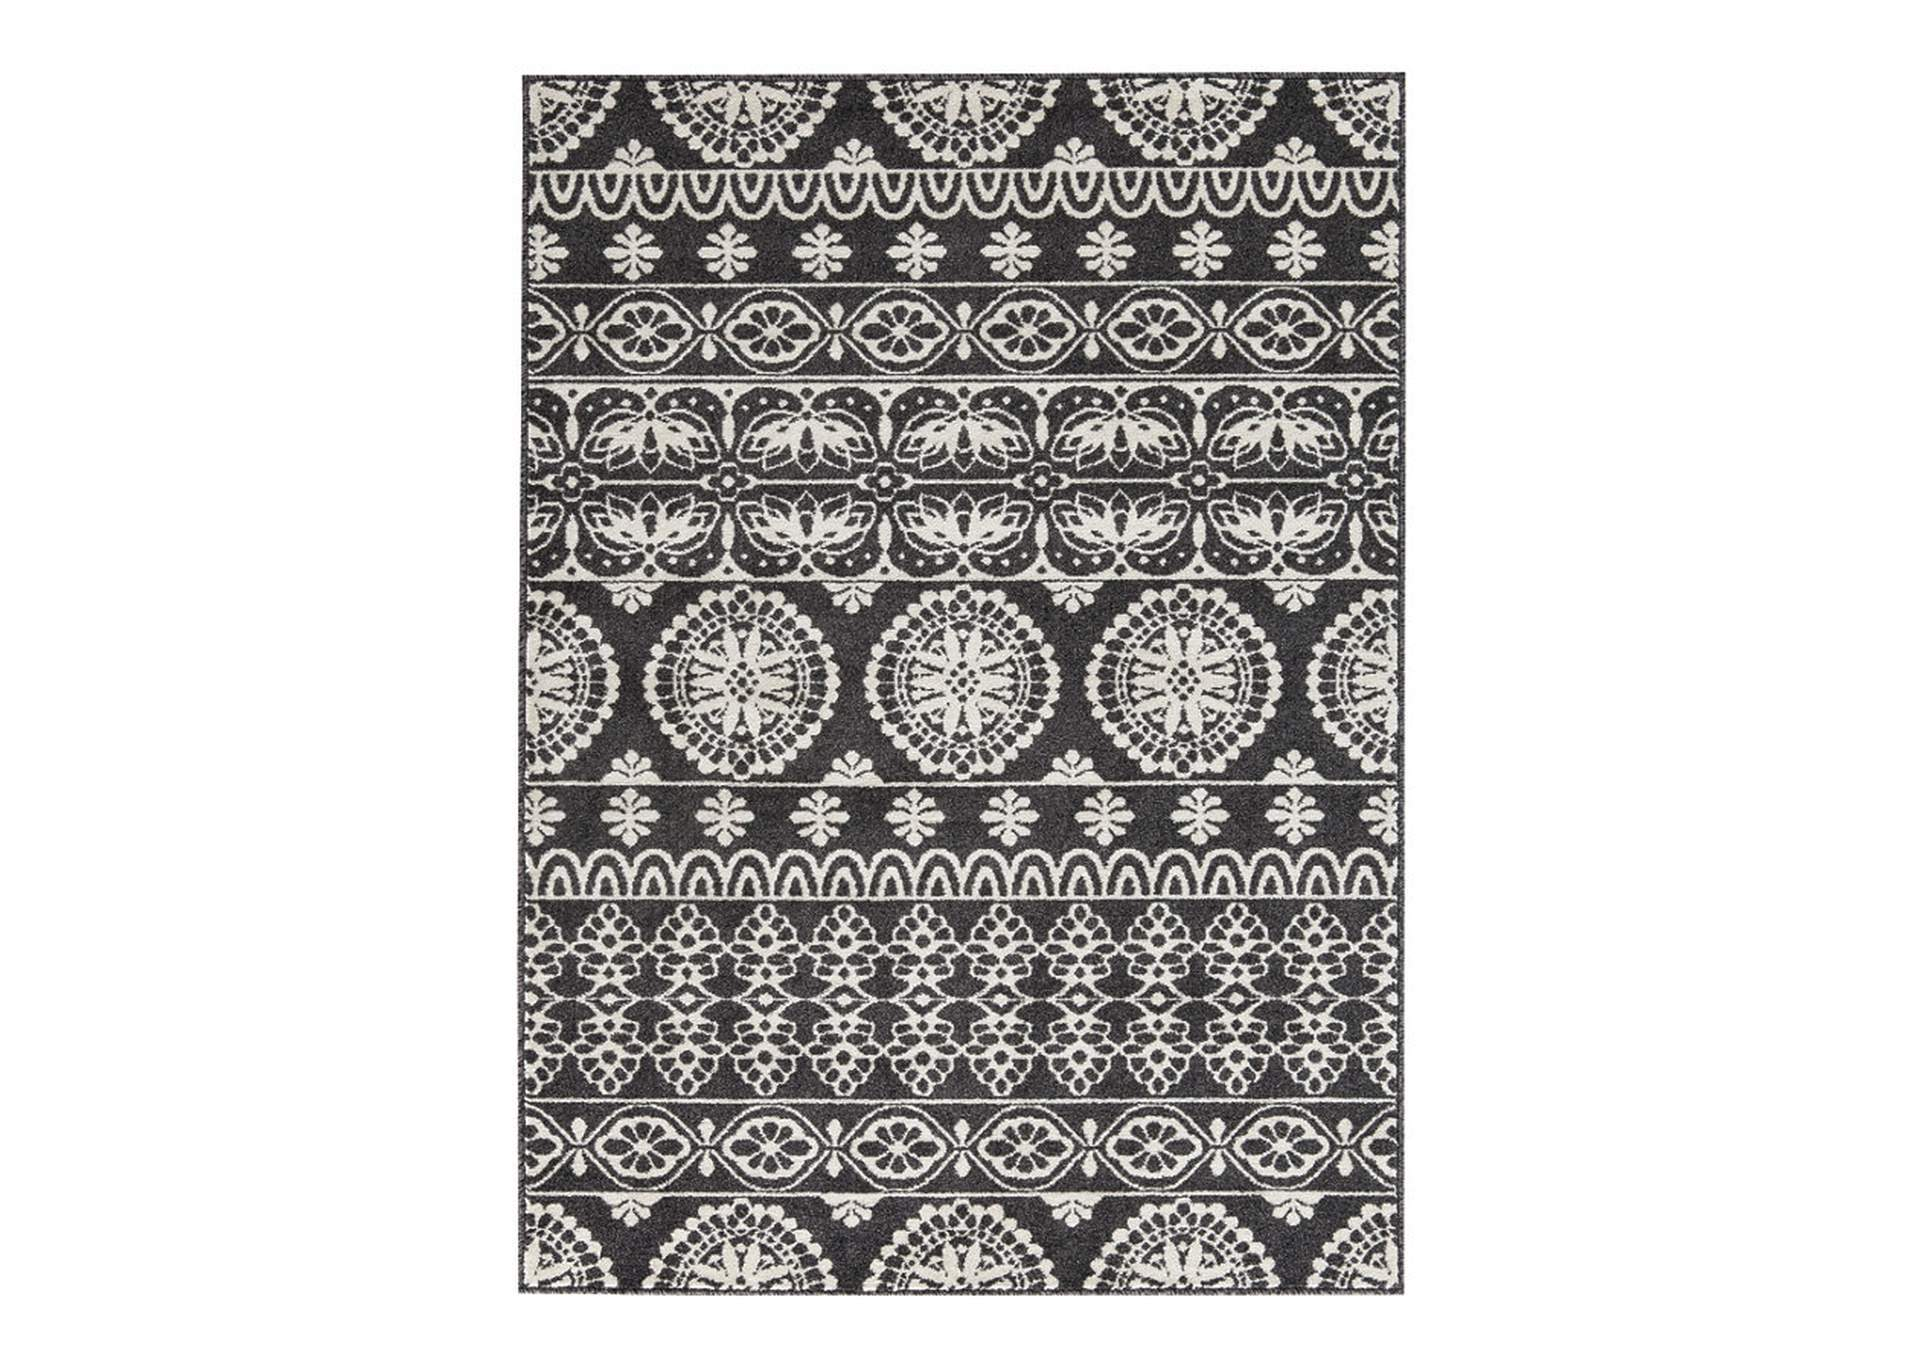 Jicarilla Black/White Large Rug,Direct To Consumer Express